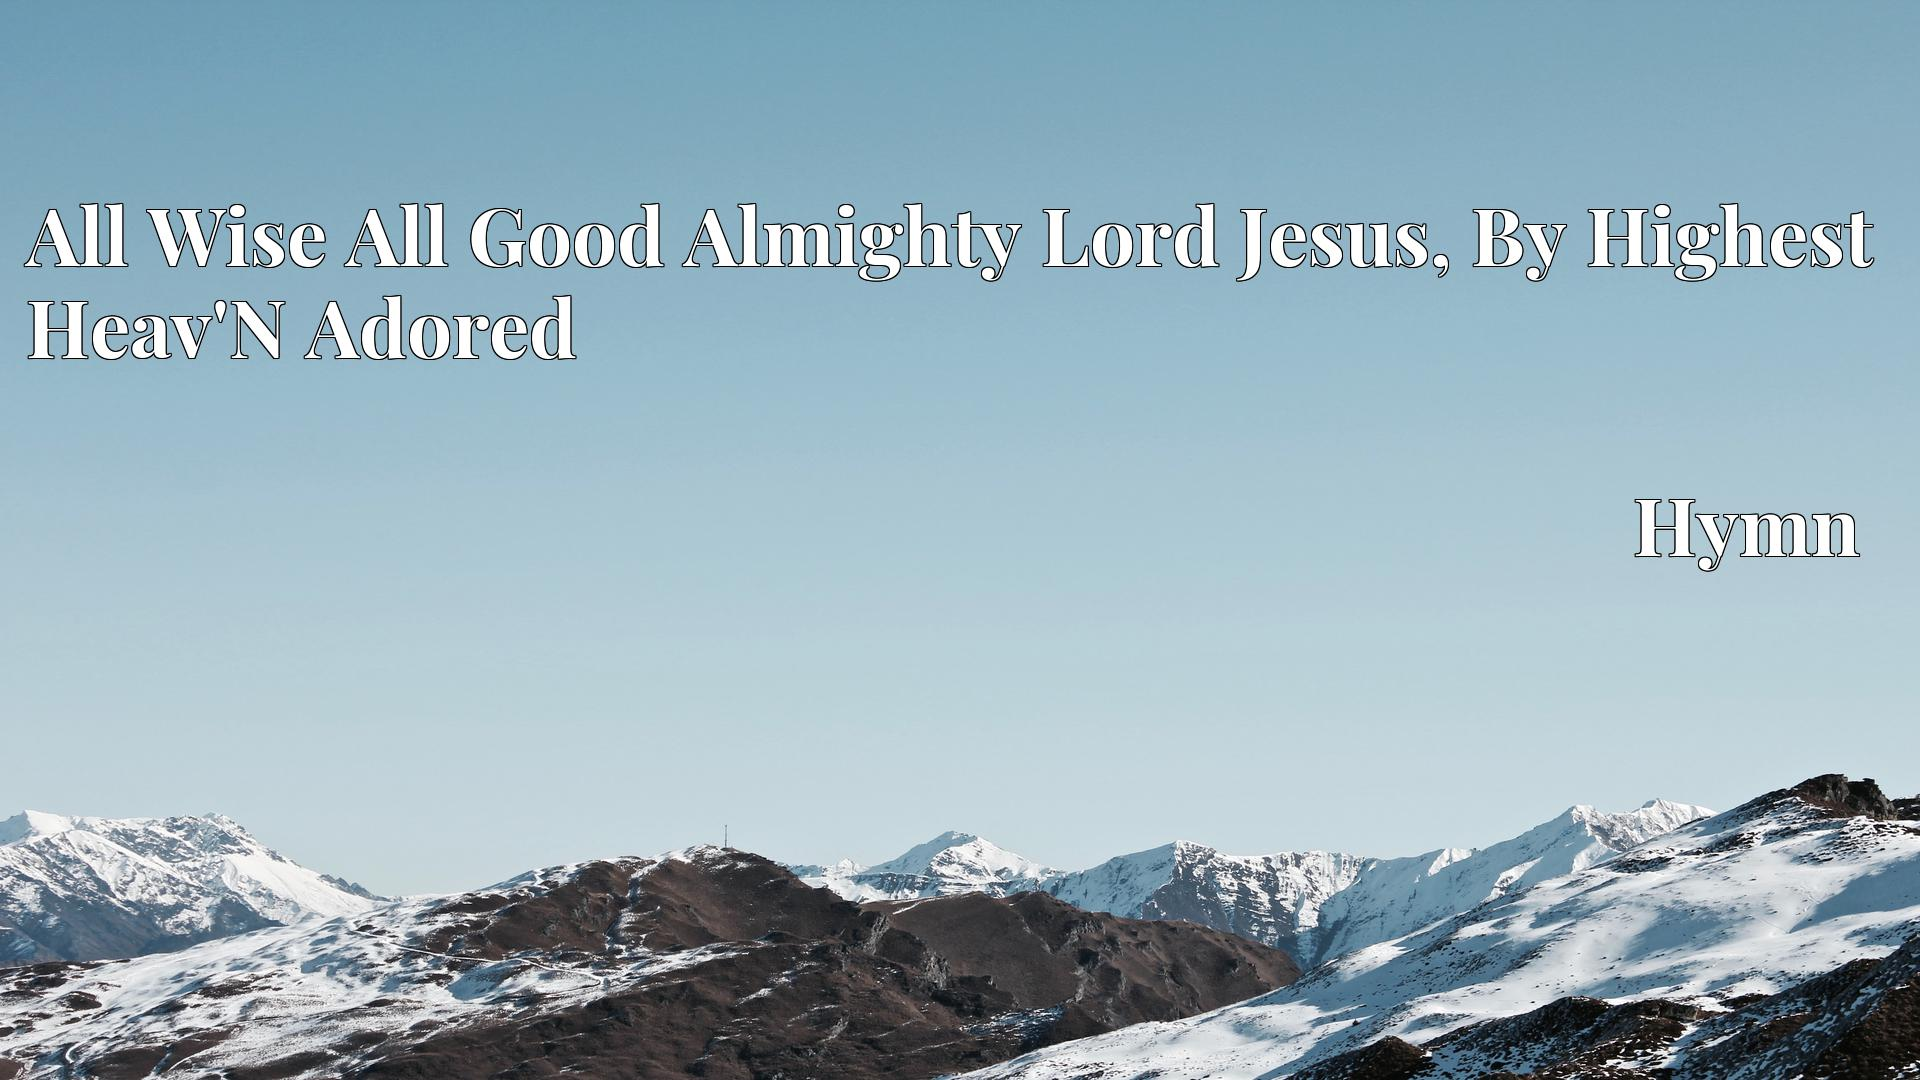 All Wise All Good Almighty Lord Jesus, By Highest Heav'N Adored - Hymn